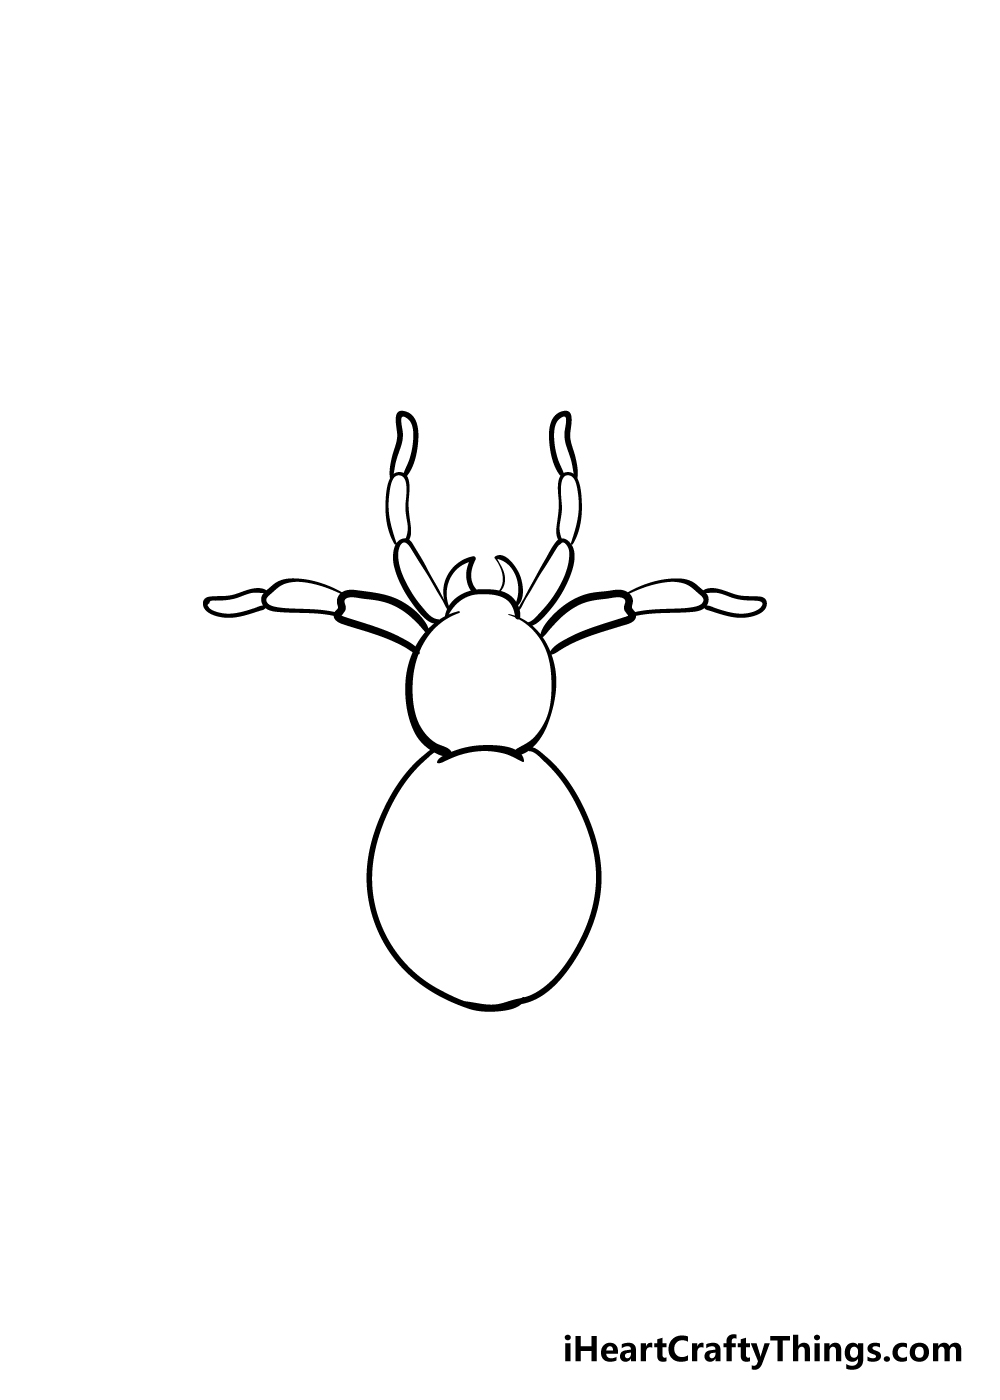 spider drawing step 4